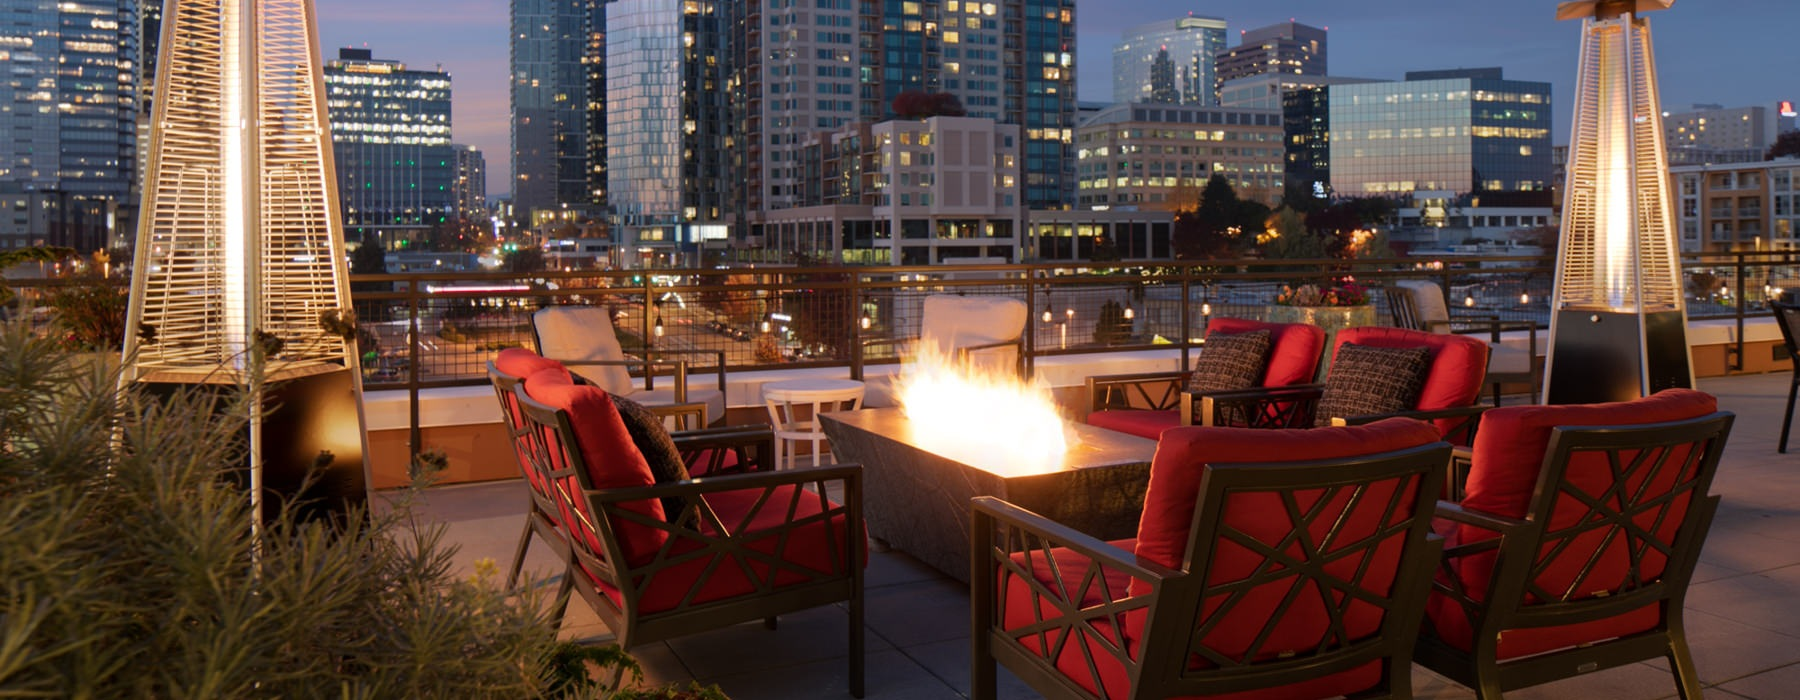 rooftop terrace with firepit at night